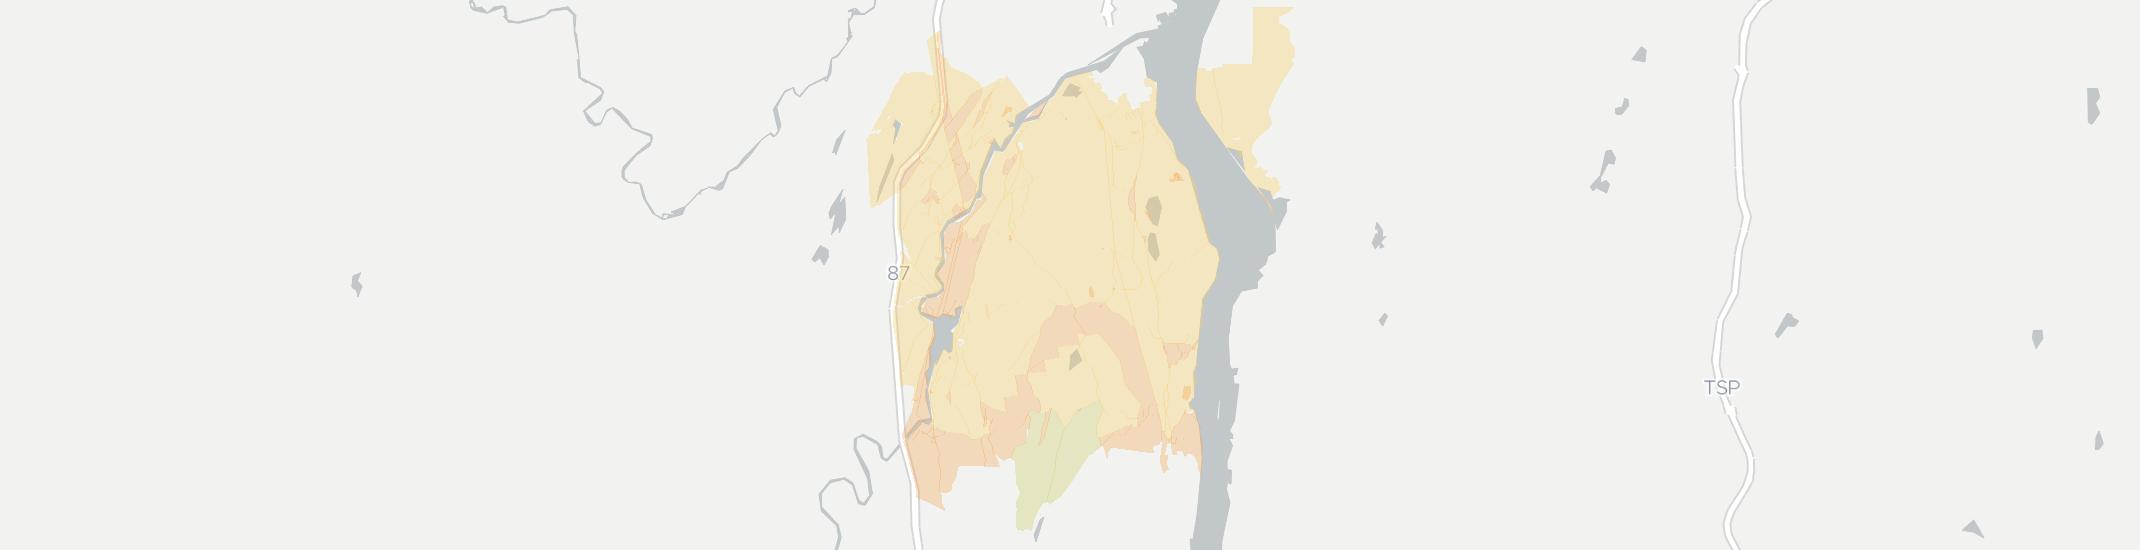 5 Best Internet Service Providers in Ulster Park, NY ... Ulster County Ny Census Tract Map Of Towns on